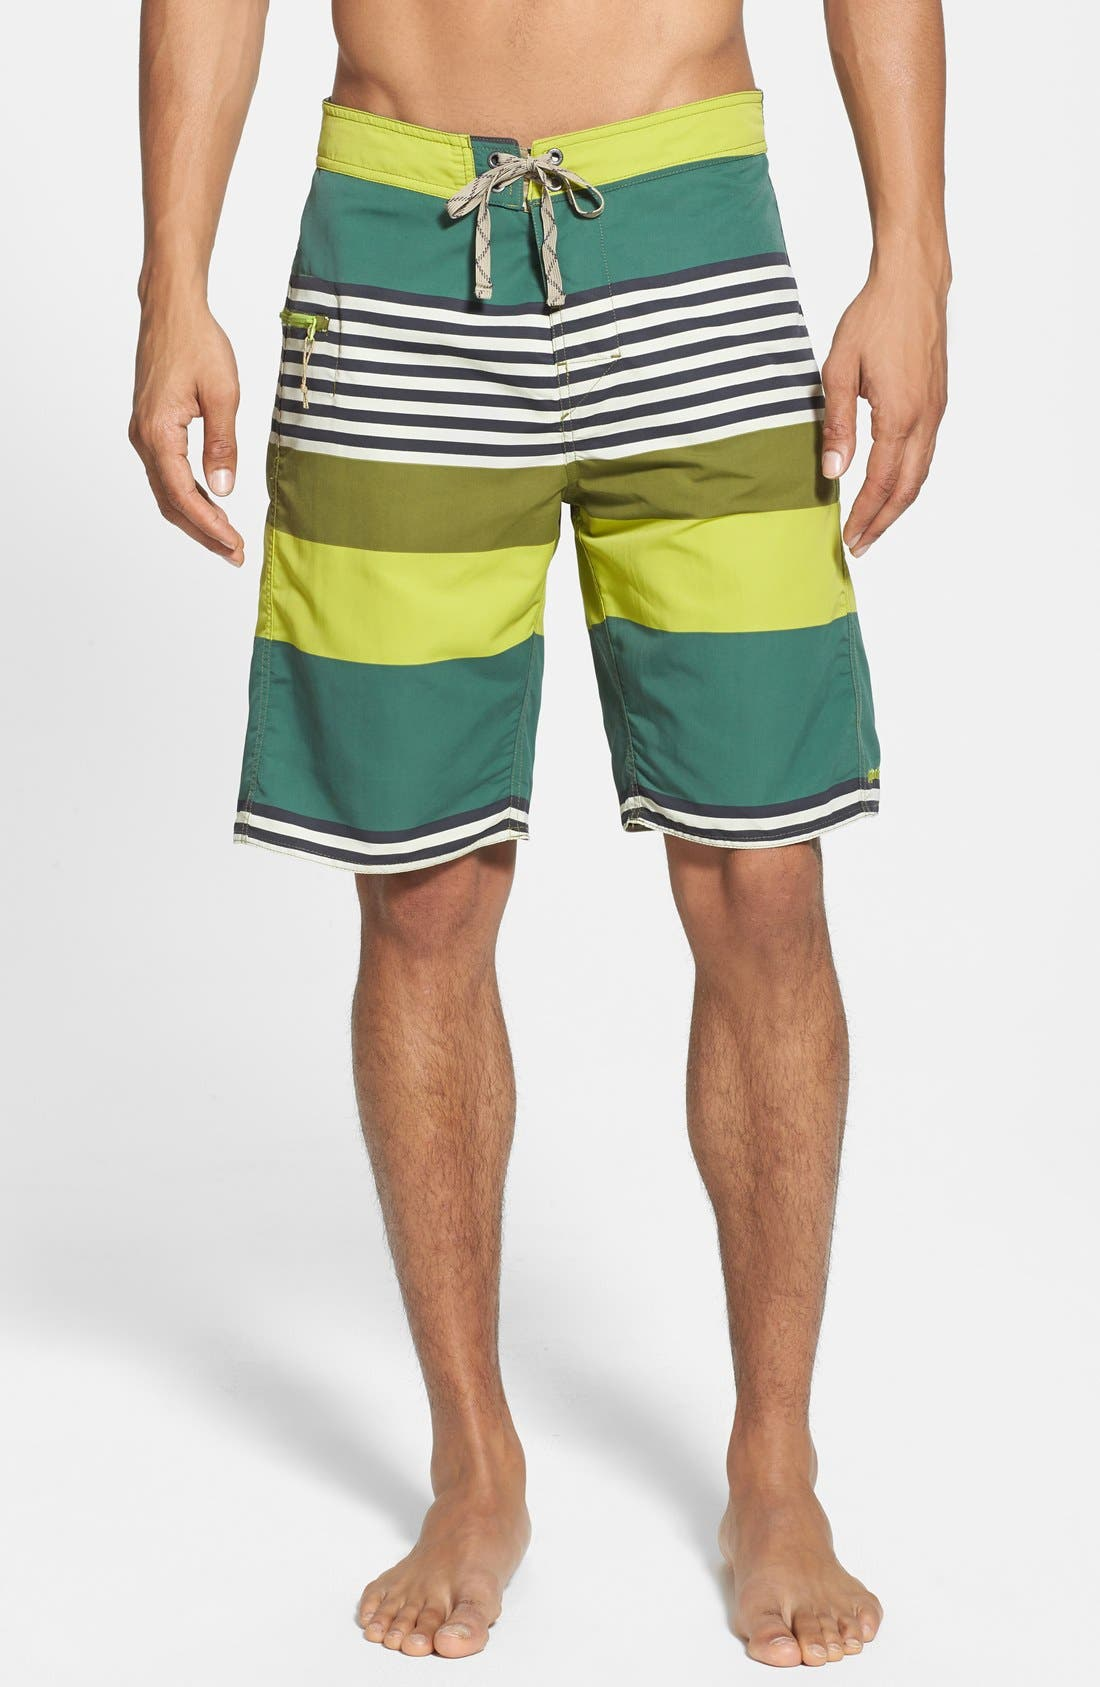 Alternate Image 1 Selected - Patagonia 'Wavefarer' Board Shorts